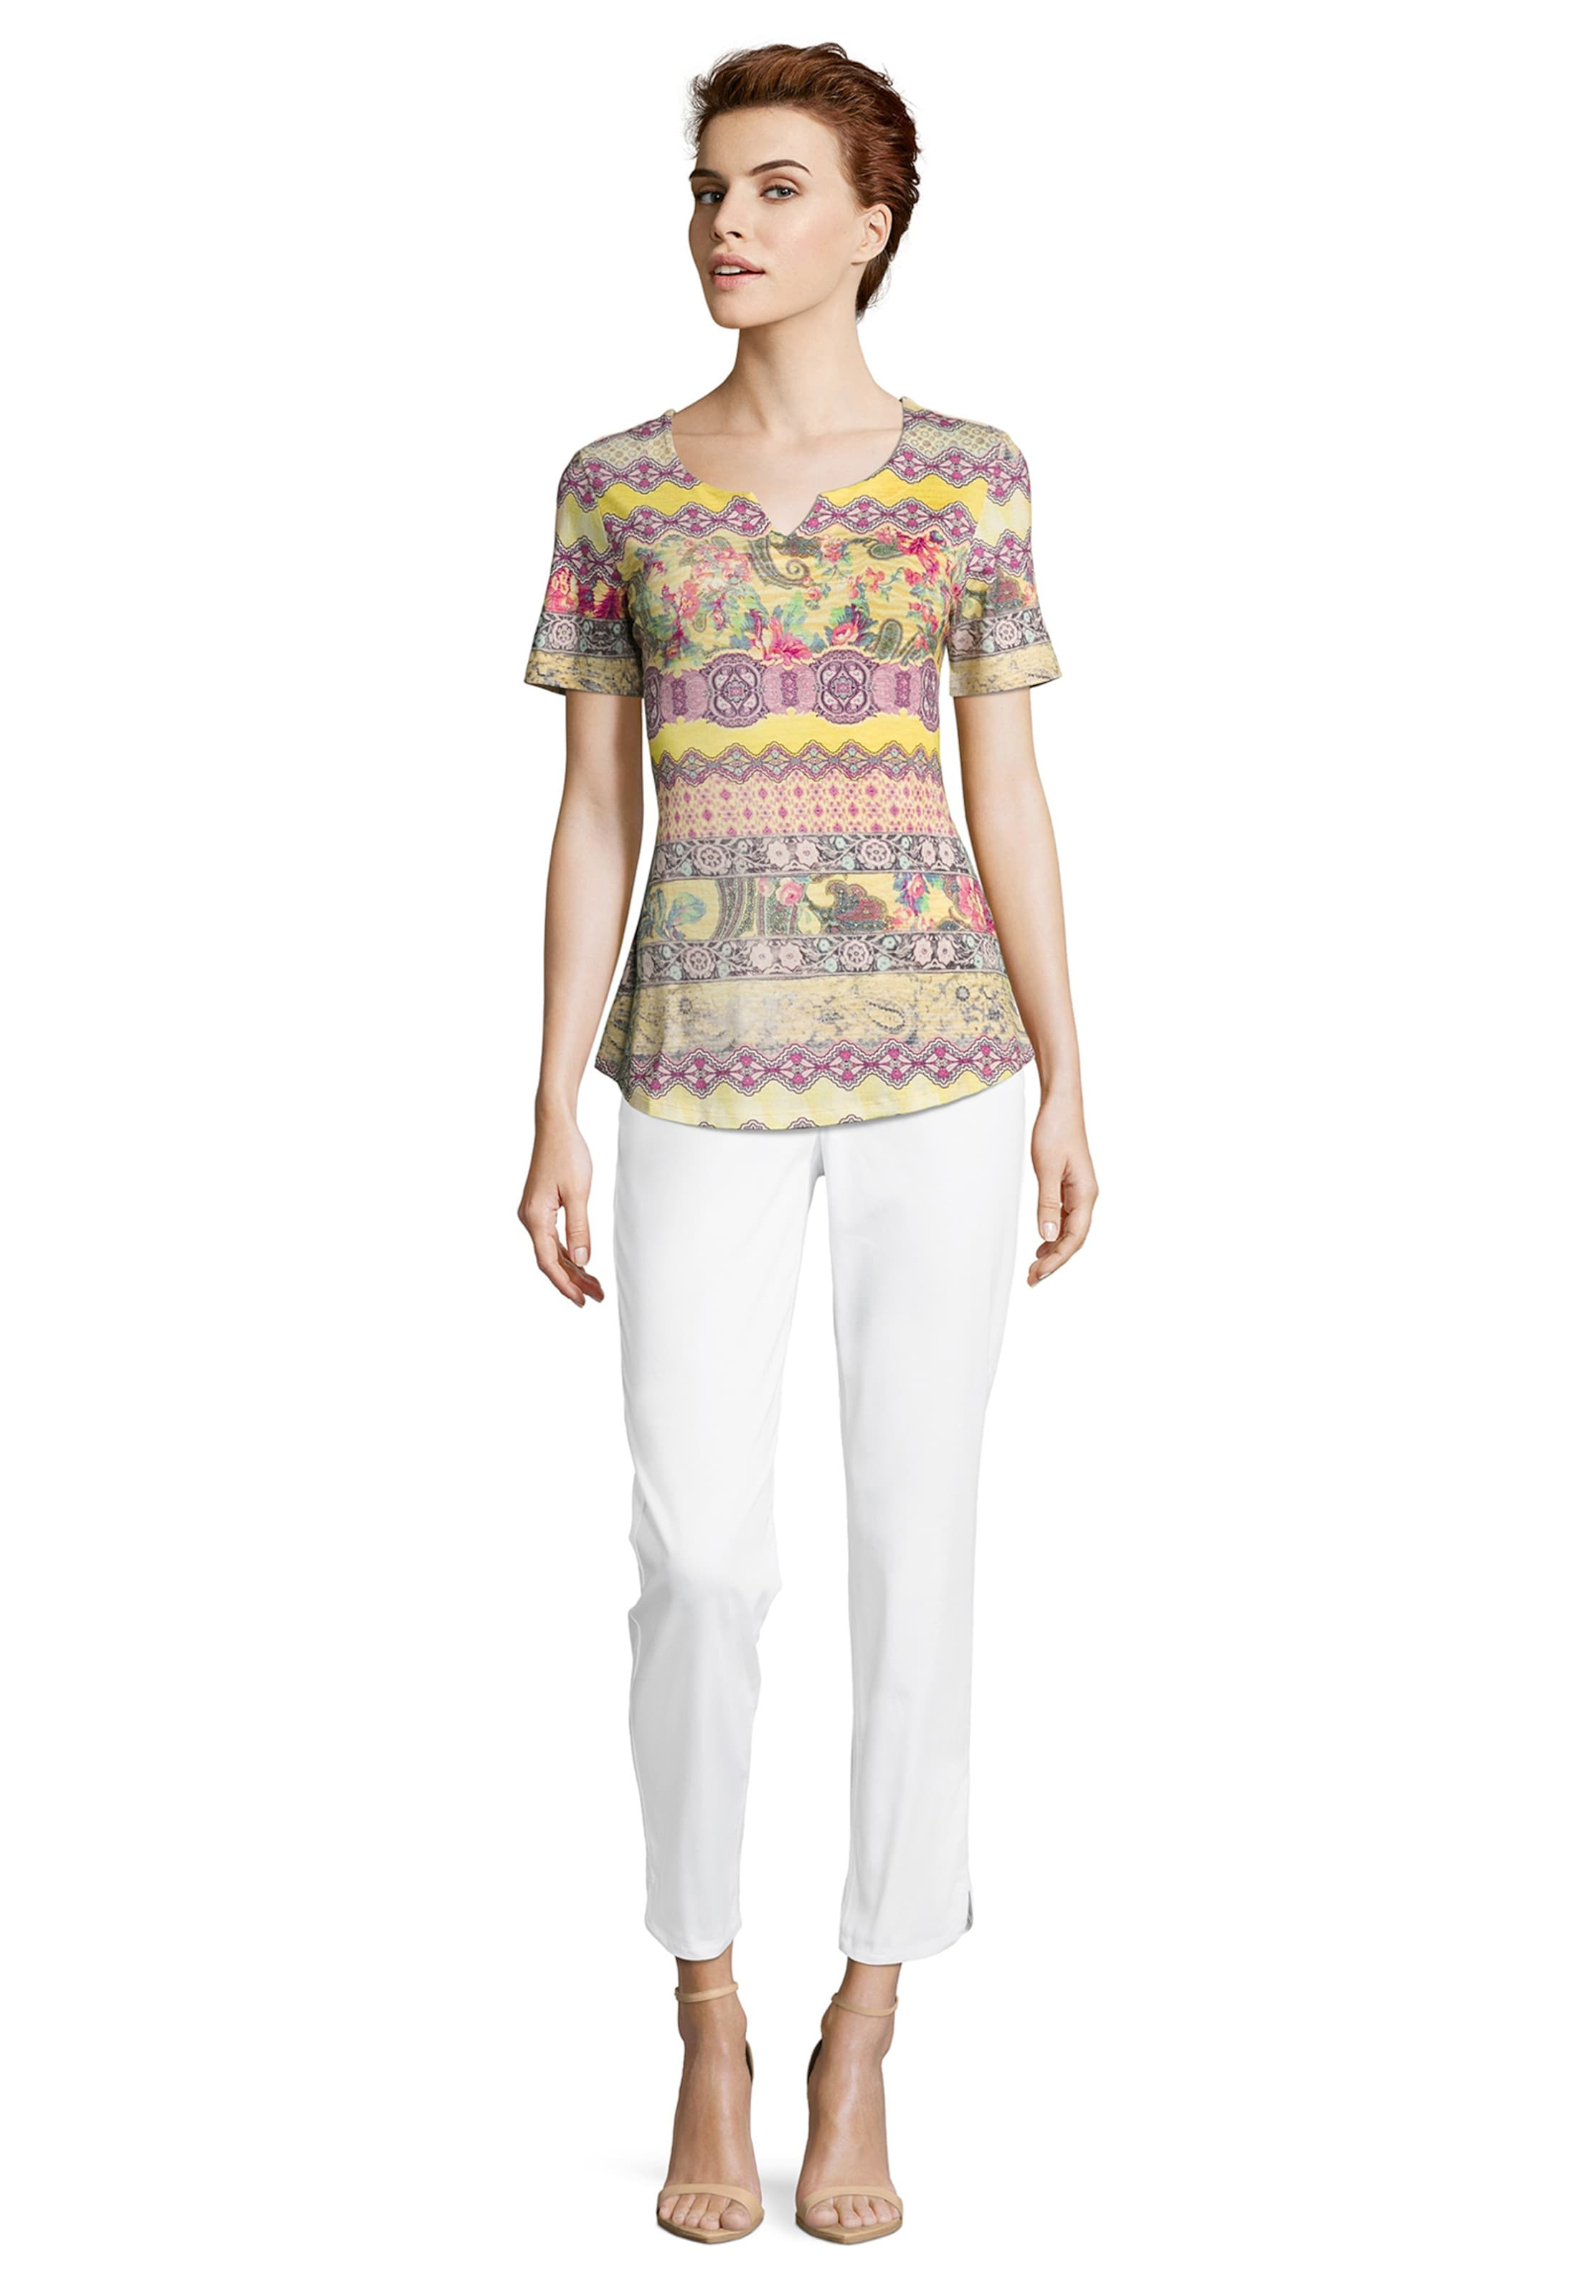 GelbMischfarben Betty Betty Shirt In Barclay Barclay F1JlKc